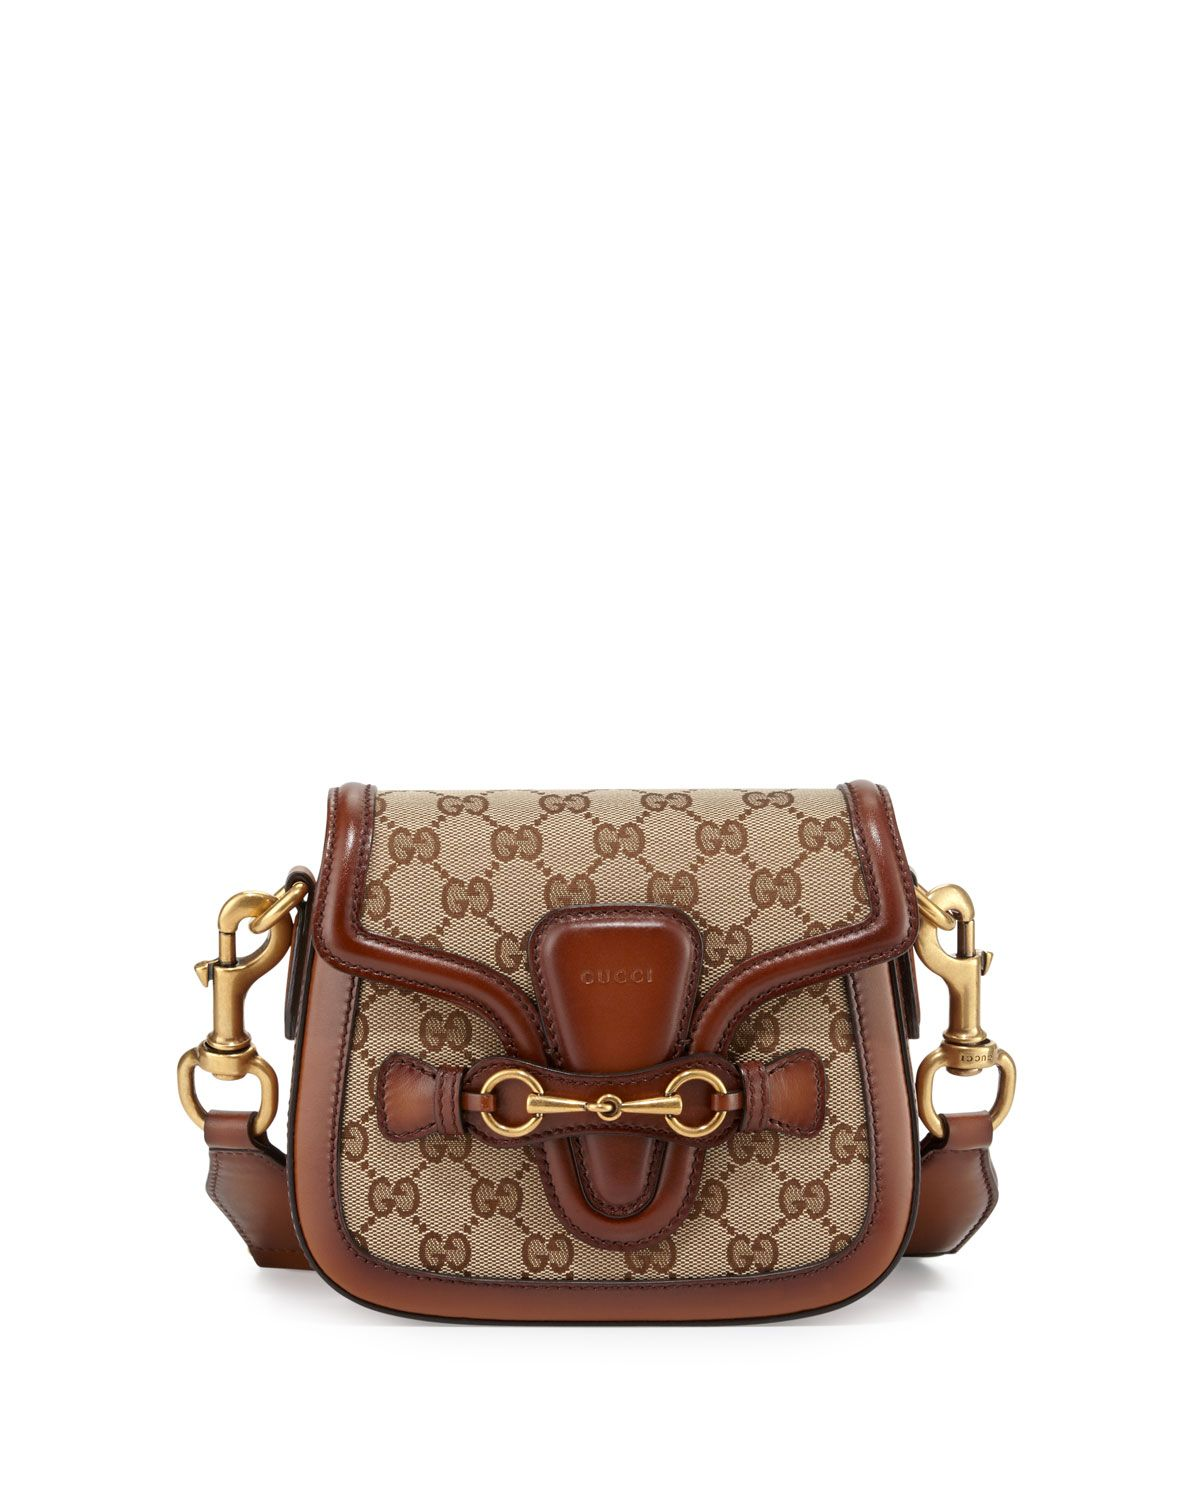 4f98fa5ab793 Gucci Lady Web Small GG Canvas Shoulder Bag, Brown, Women's, Brown/Red/Green